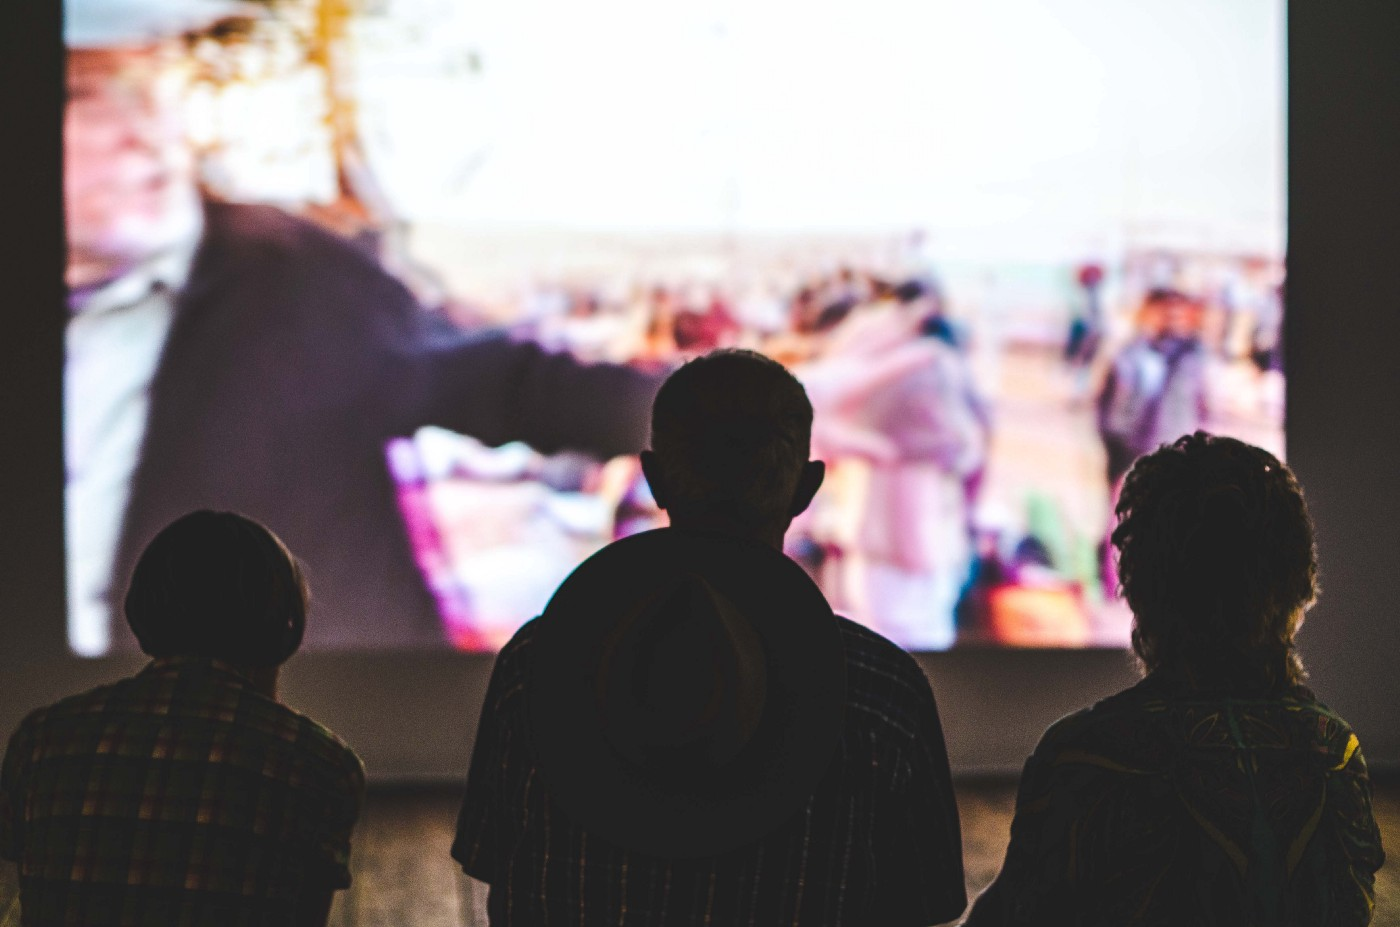 three people sitting and watching blurry bright images projected on a wall in front of them.